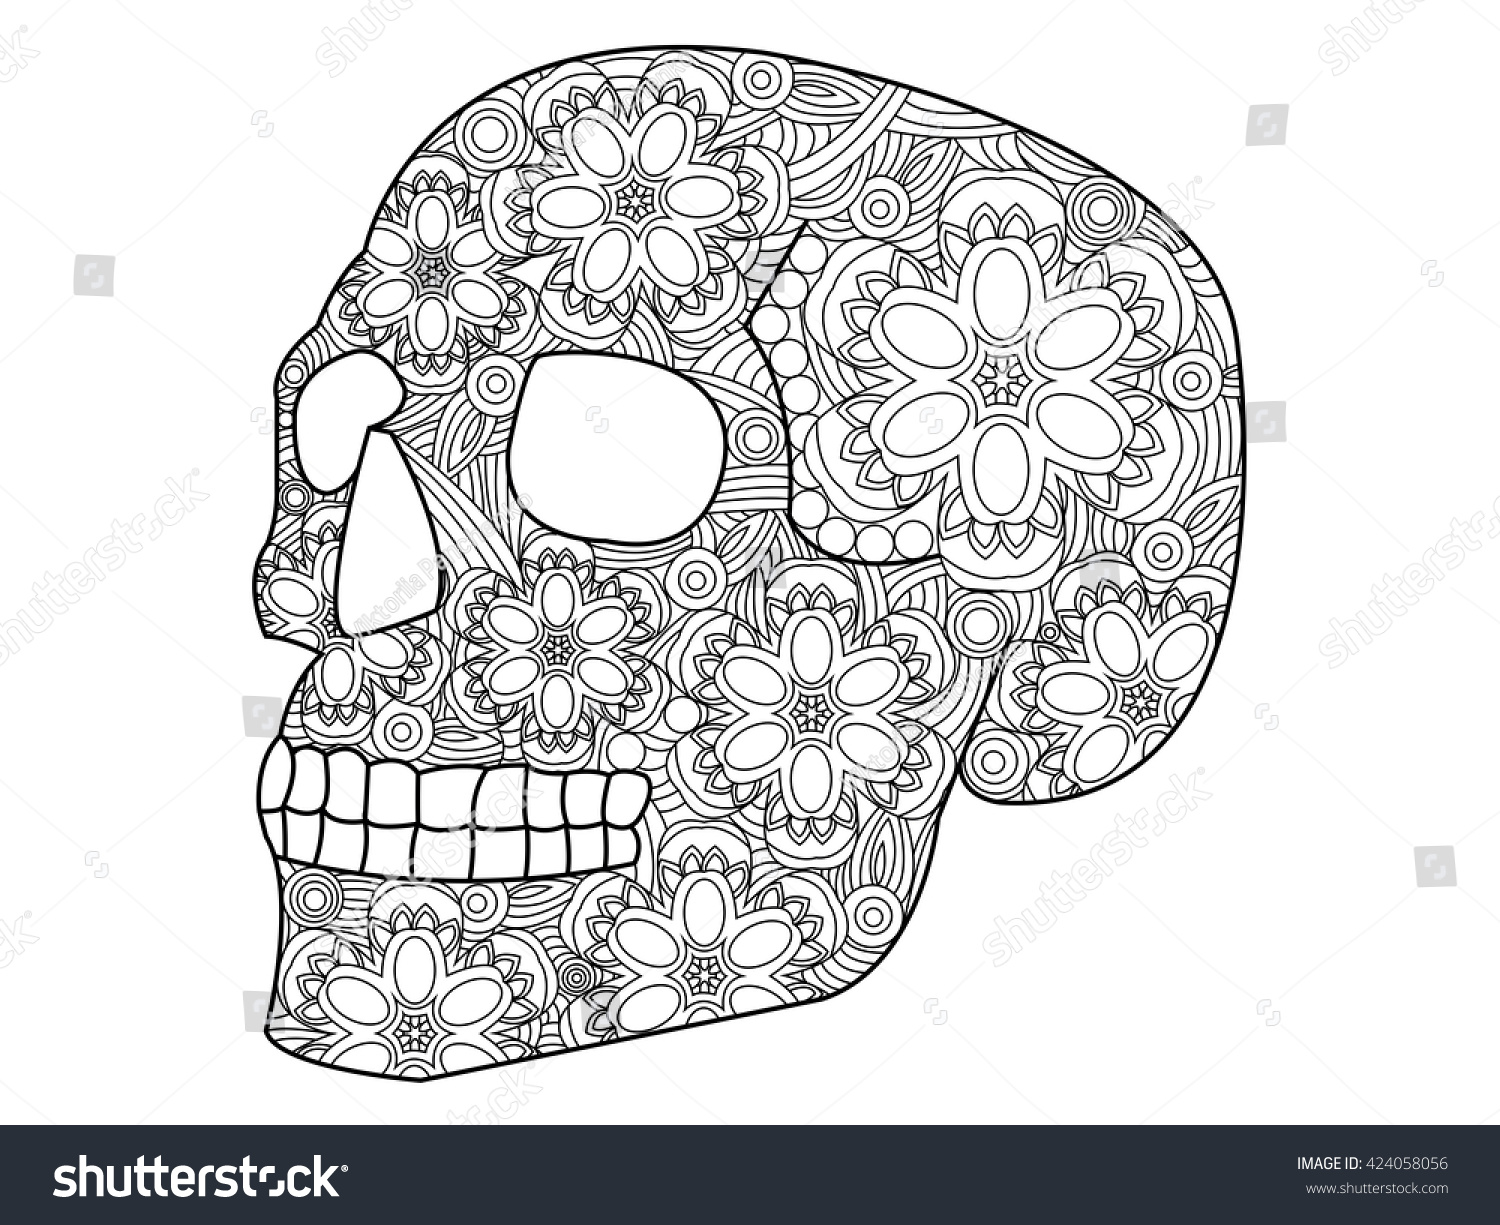 skull coloring book for adults vector illustration anti stress coloring for adult zentangle - Skull Coloring Book